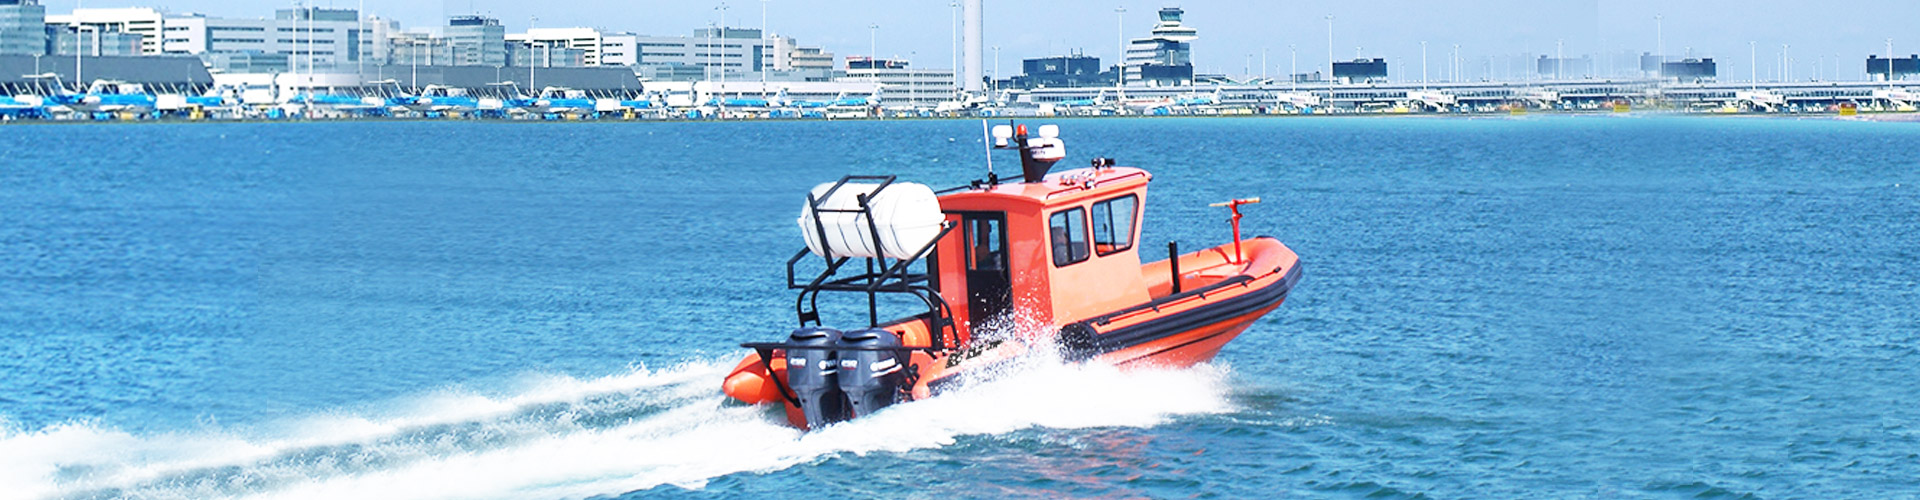 Airport Rescue RIB Boat with Cabin.